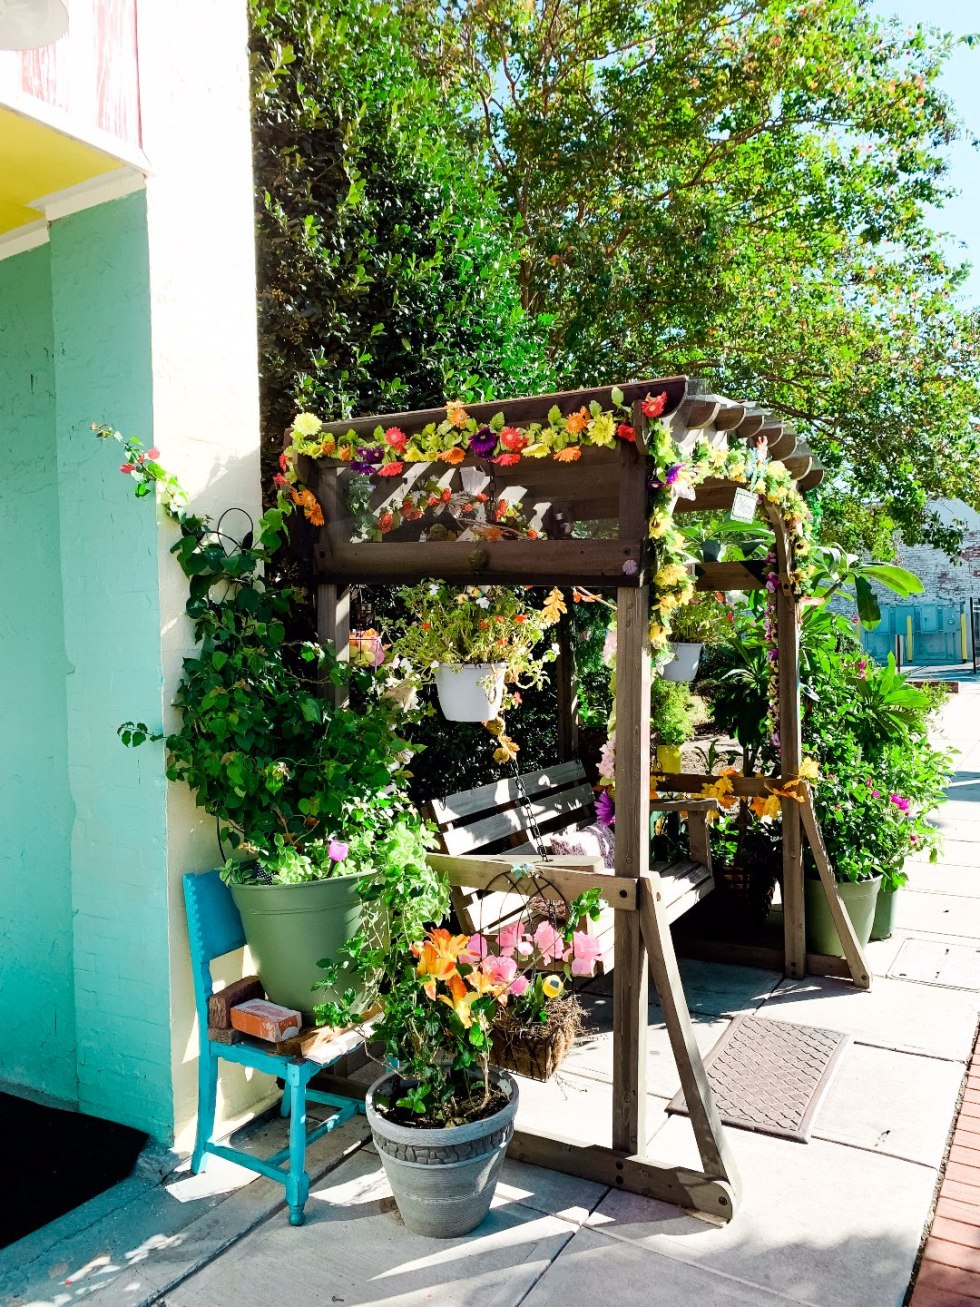 Eastern North Carolina Travel Guide: Top 10 Things to Do in Goldsboro NC by popular North Carolina blog, I'm Fixin' To: image of a decorated bench swing.